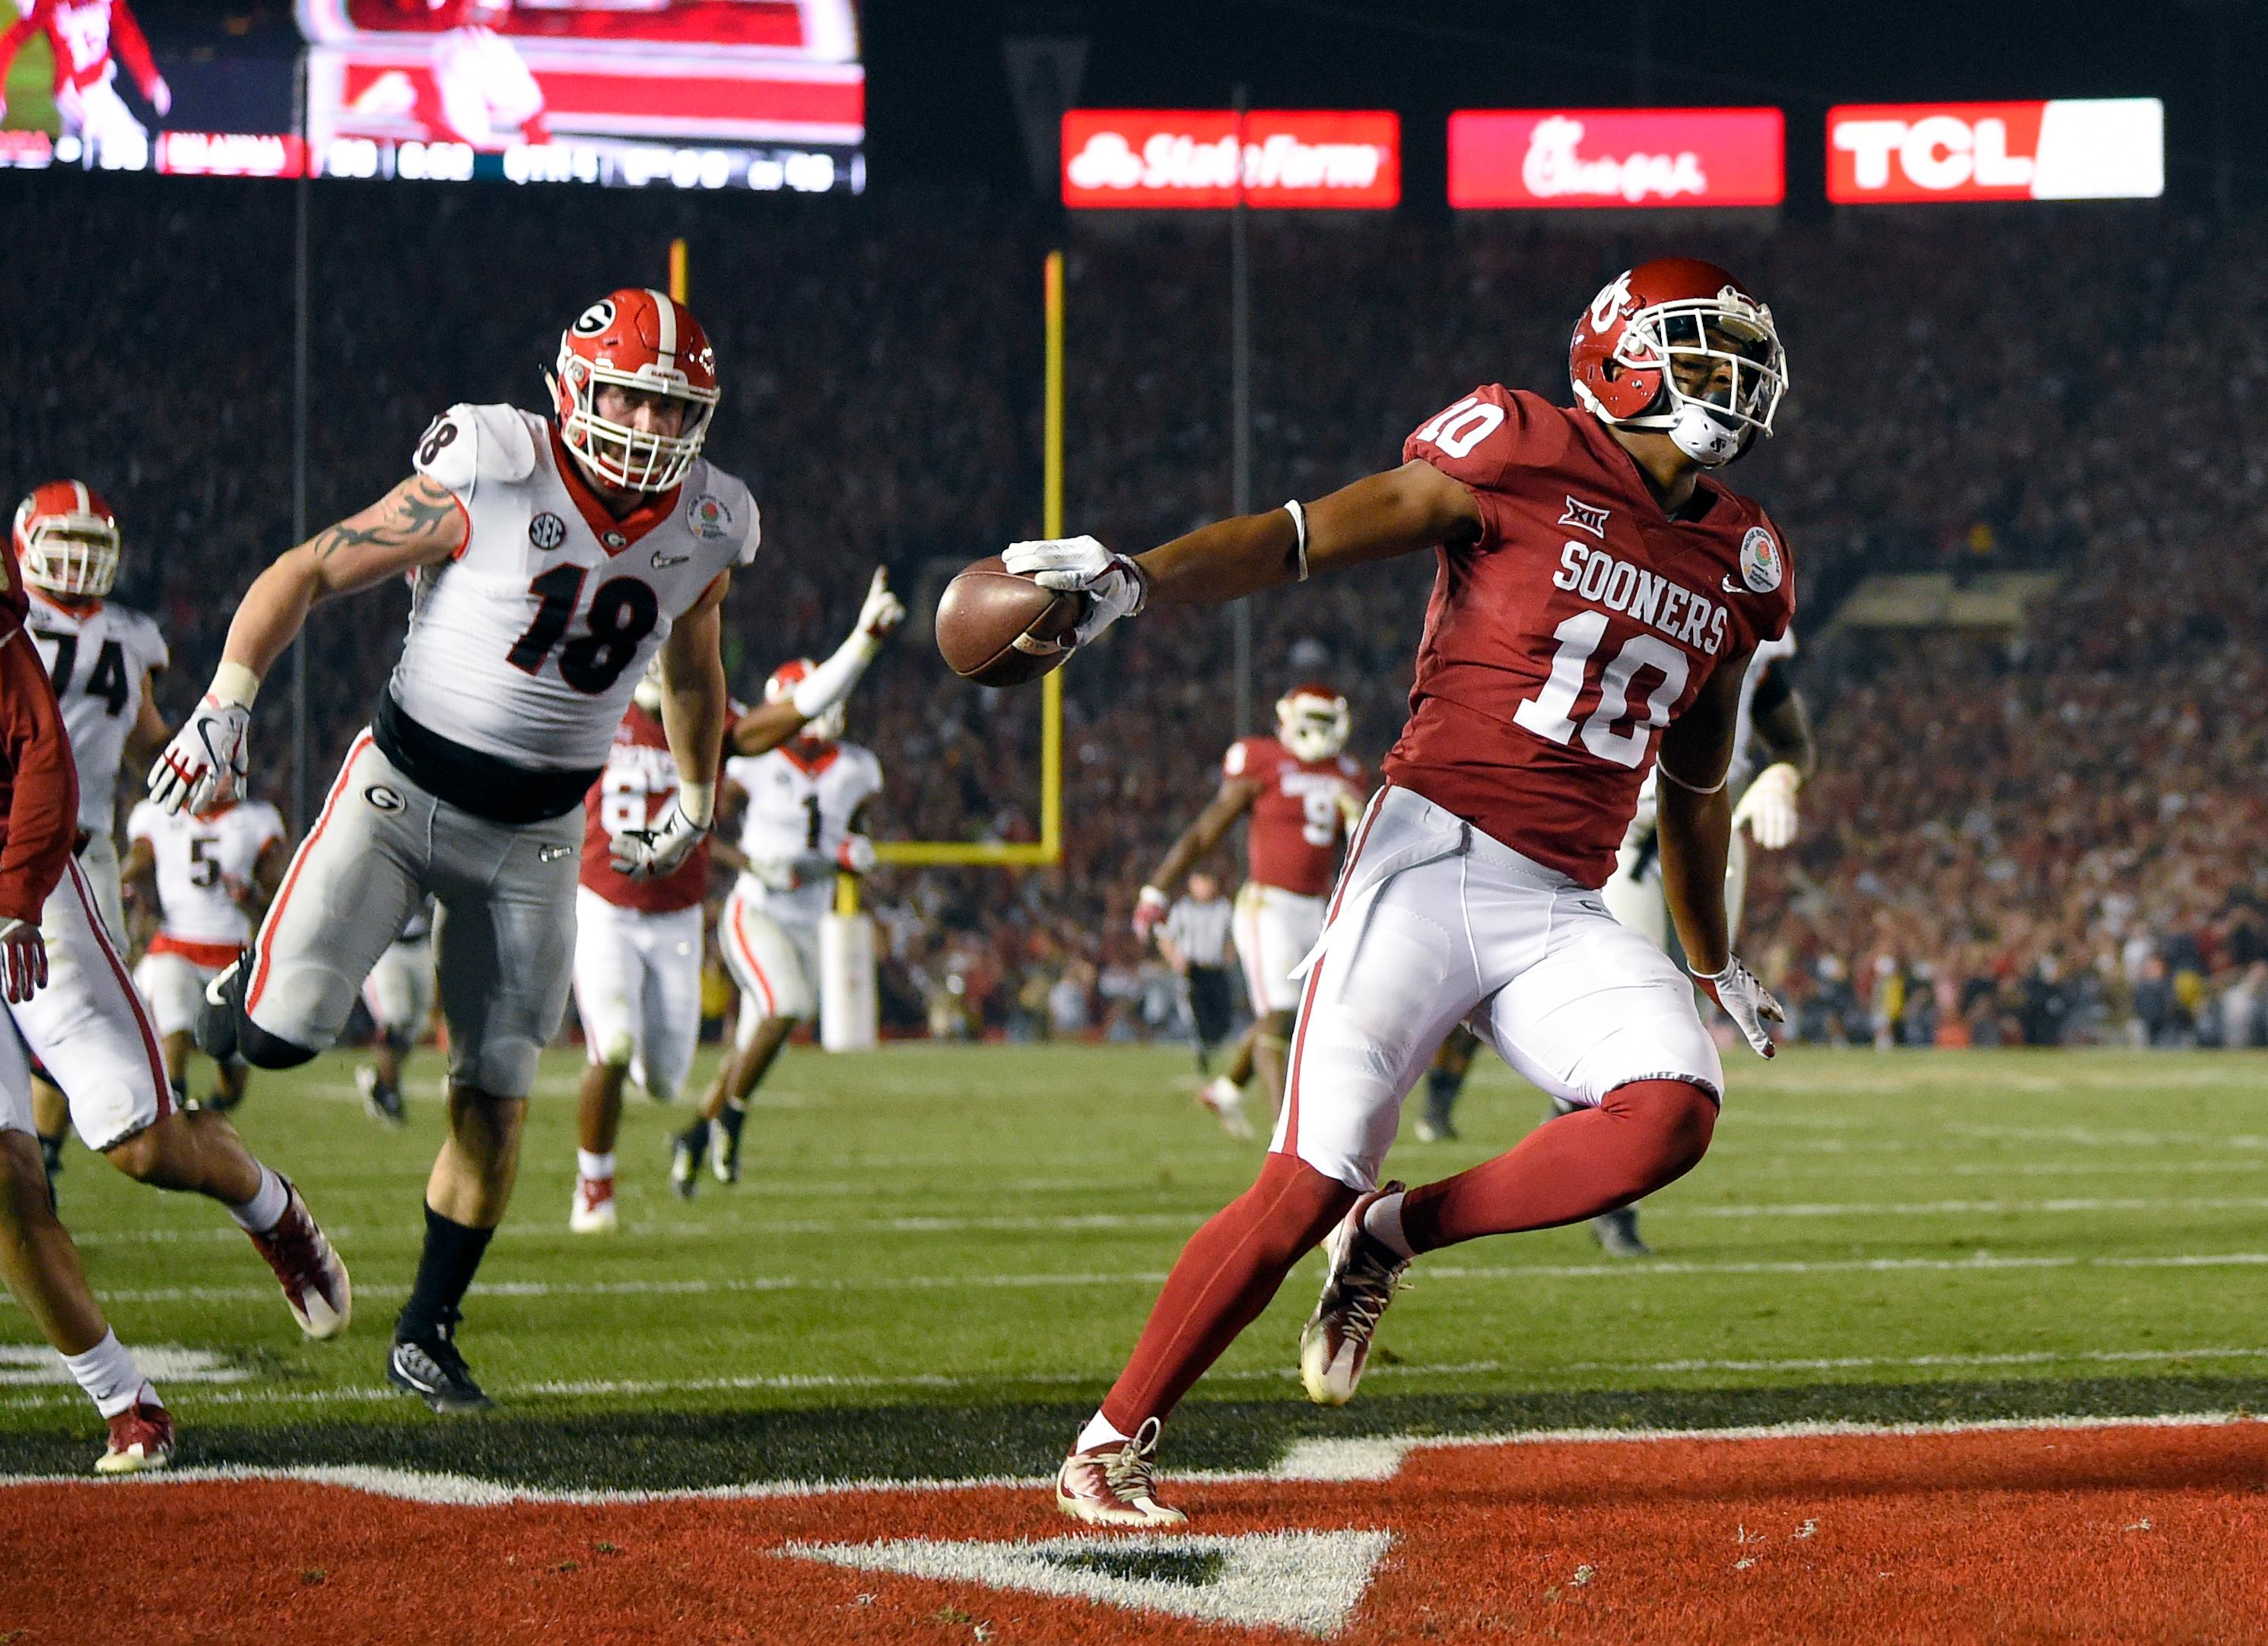 Oklahoma defensive back Steven Parker (10) scores a touchdown ahead of Georgia tight end Isaac Nauta (18) after Parker recovered a fumble during the second half of the Rose Bowl NCAA college football game Monday, Jan. 1, 2018, in Pasadena, Calif. (AP Photo/Mark J. Terrill)